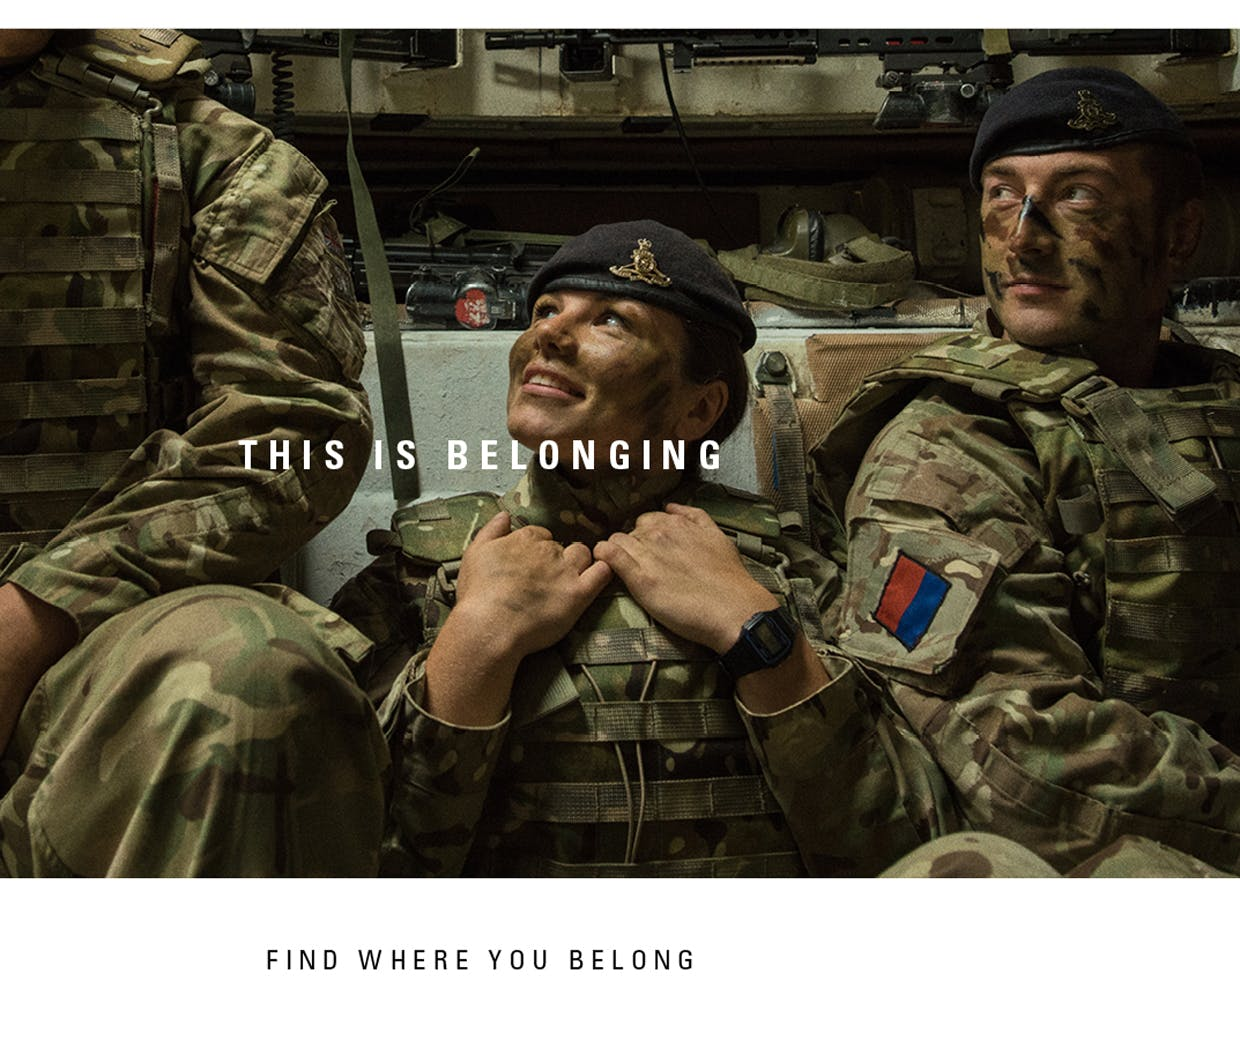 Marketing That Matters: The inside story of the Army's award-winning 'Belonging' recruitment campaign